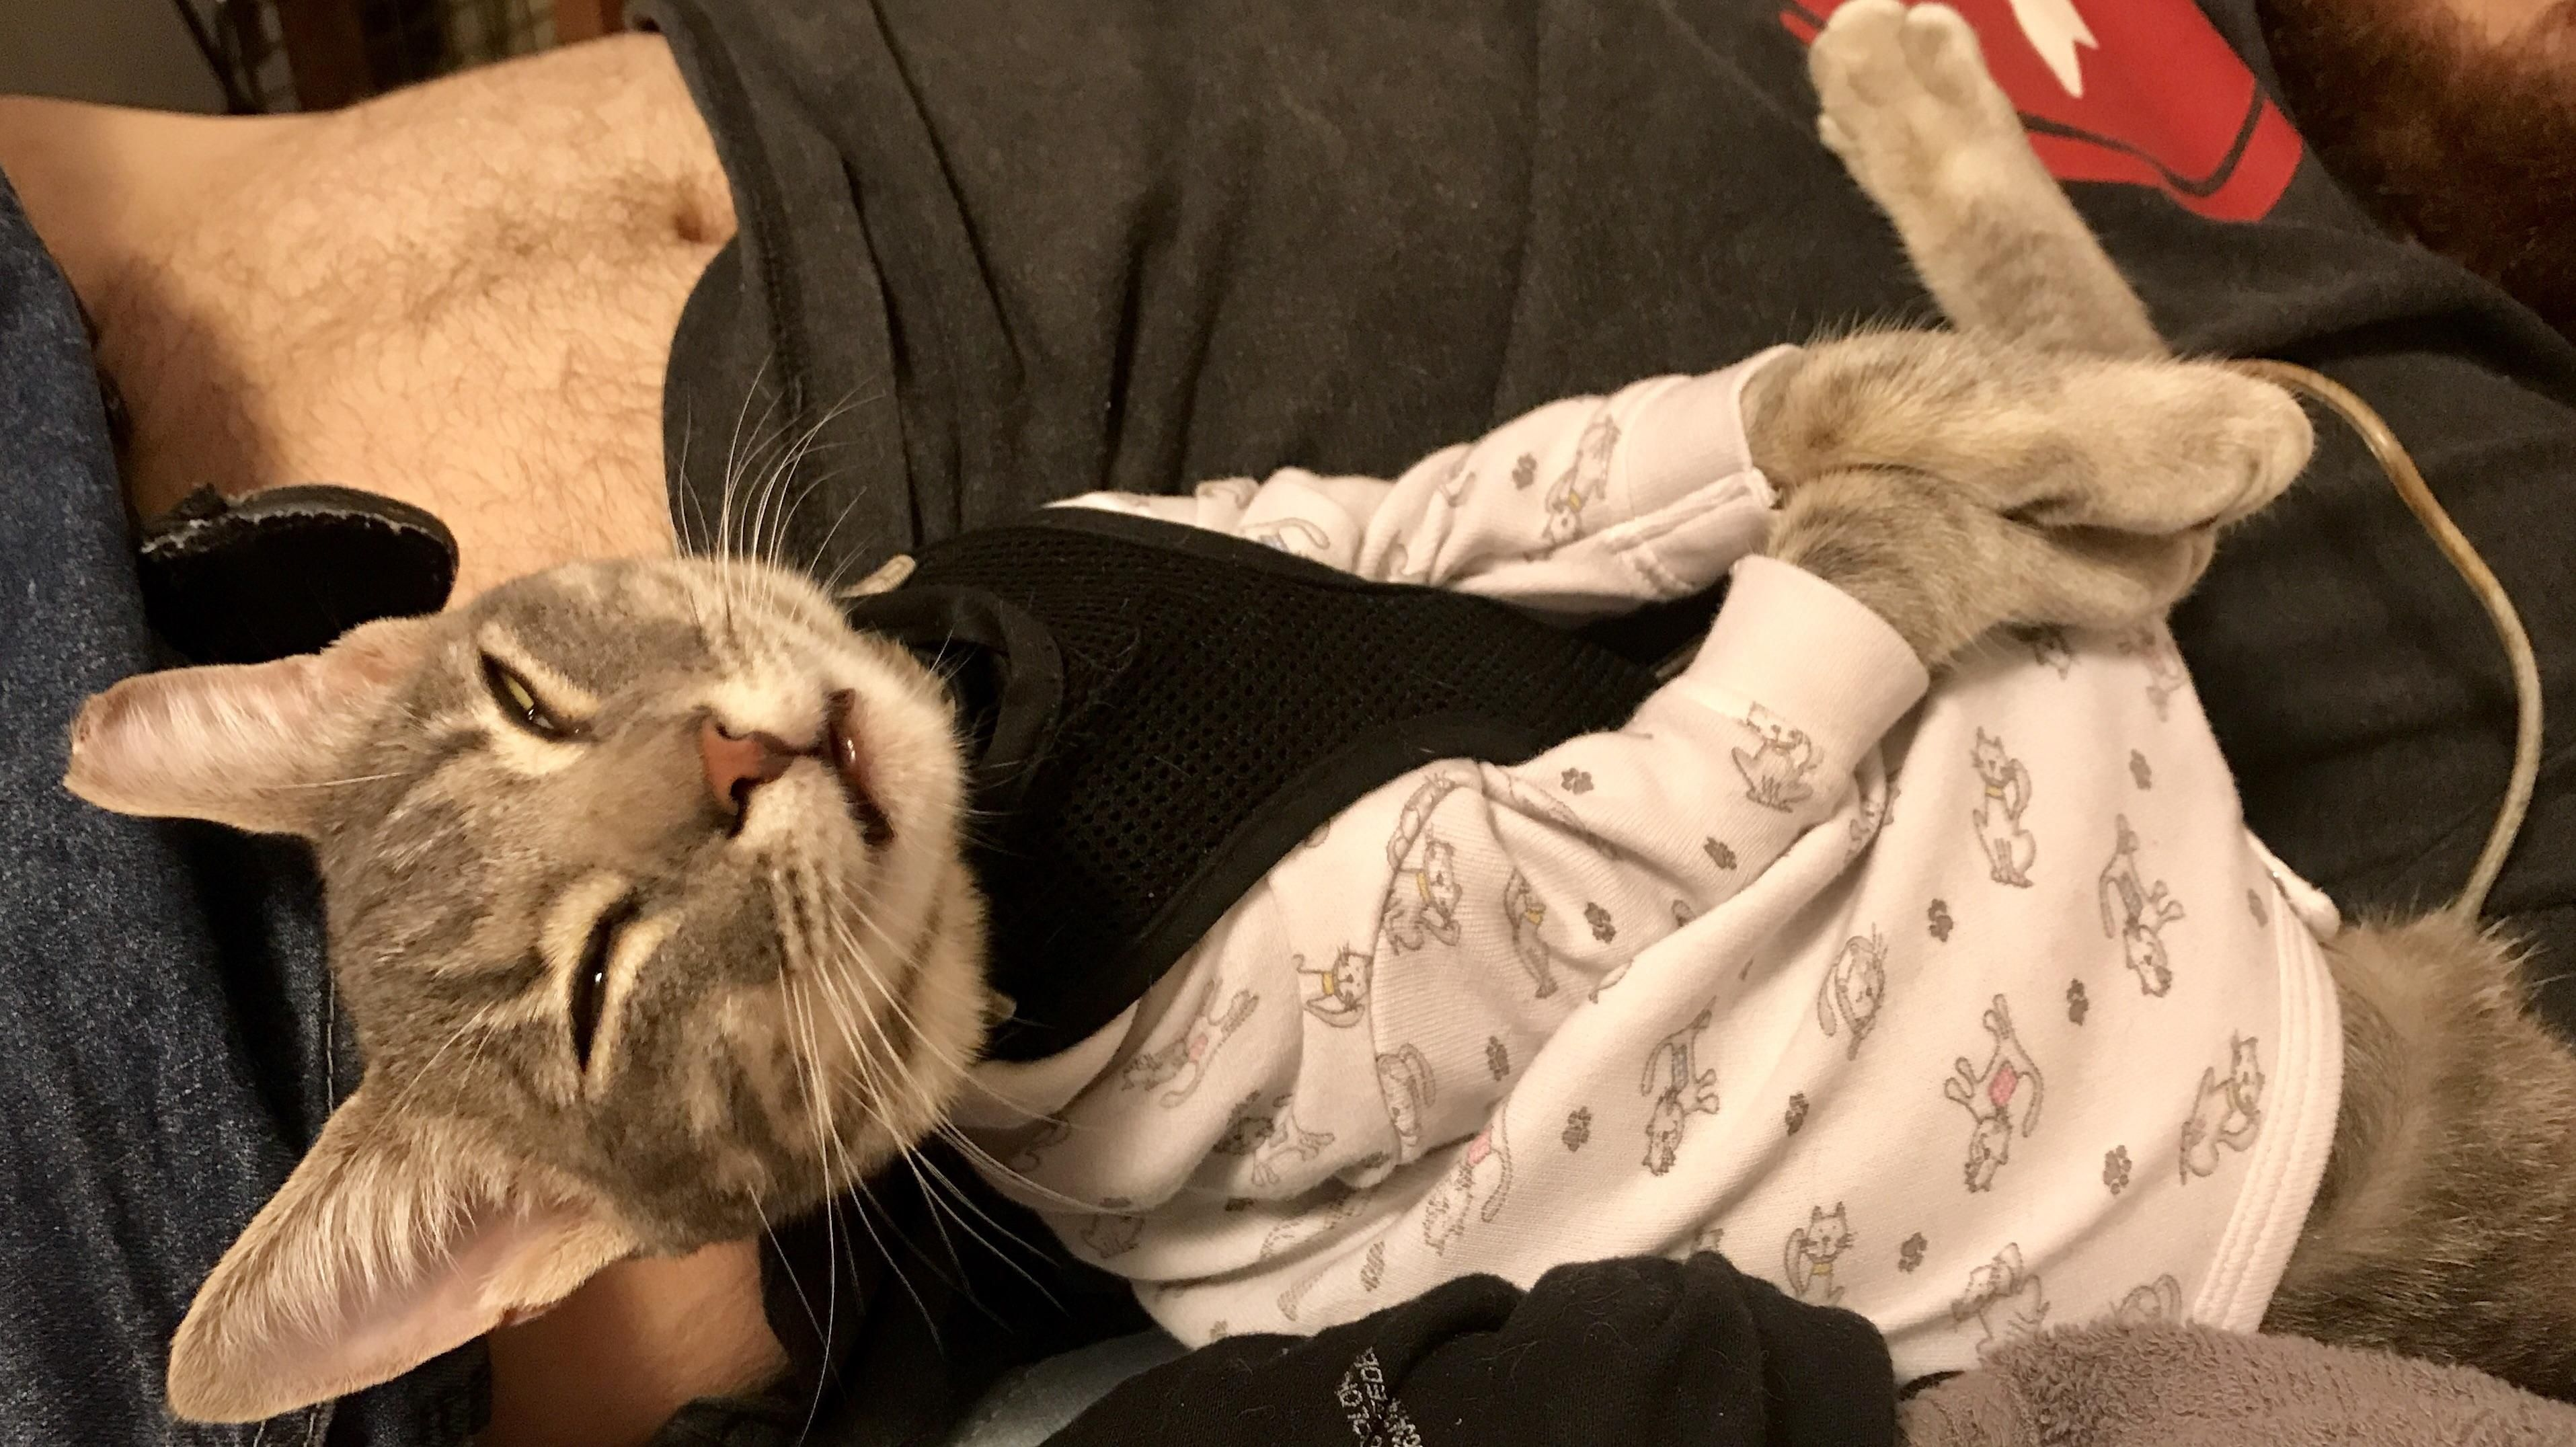 Pin by My Animal on Awww Animals&Babies Cats, Cat